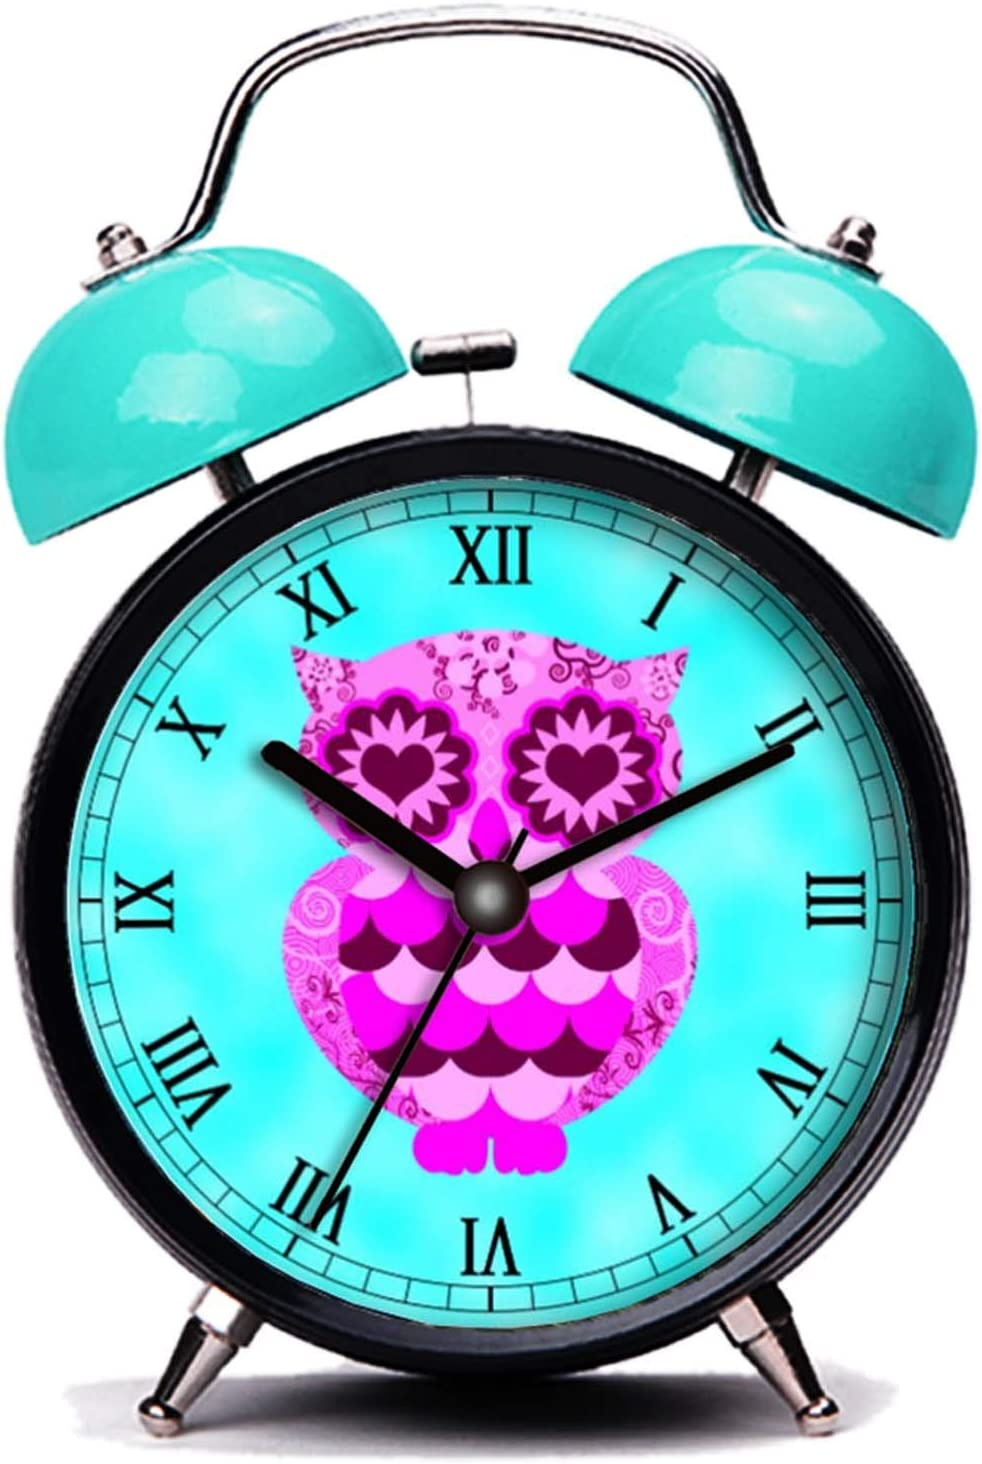 GIRLSIGHT3 Blue Alarm Clock, Cute Cute Pink Purple Heart Retro Owl Groovy Teal Sky Loud Alarm Clock Twin Bell Alarm Clocks with Nightlight